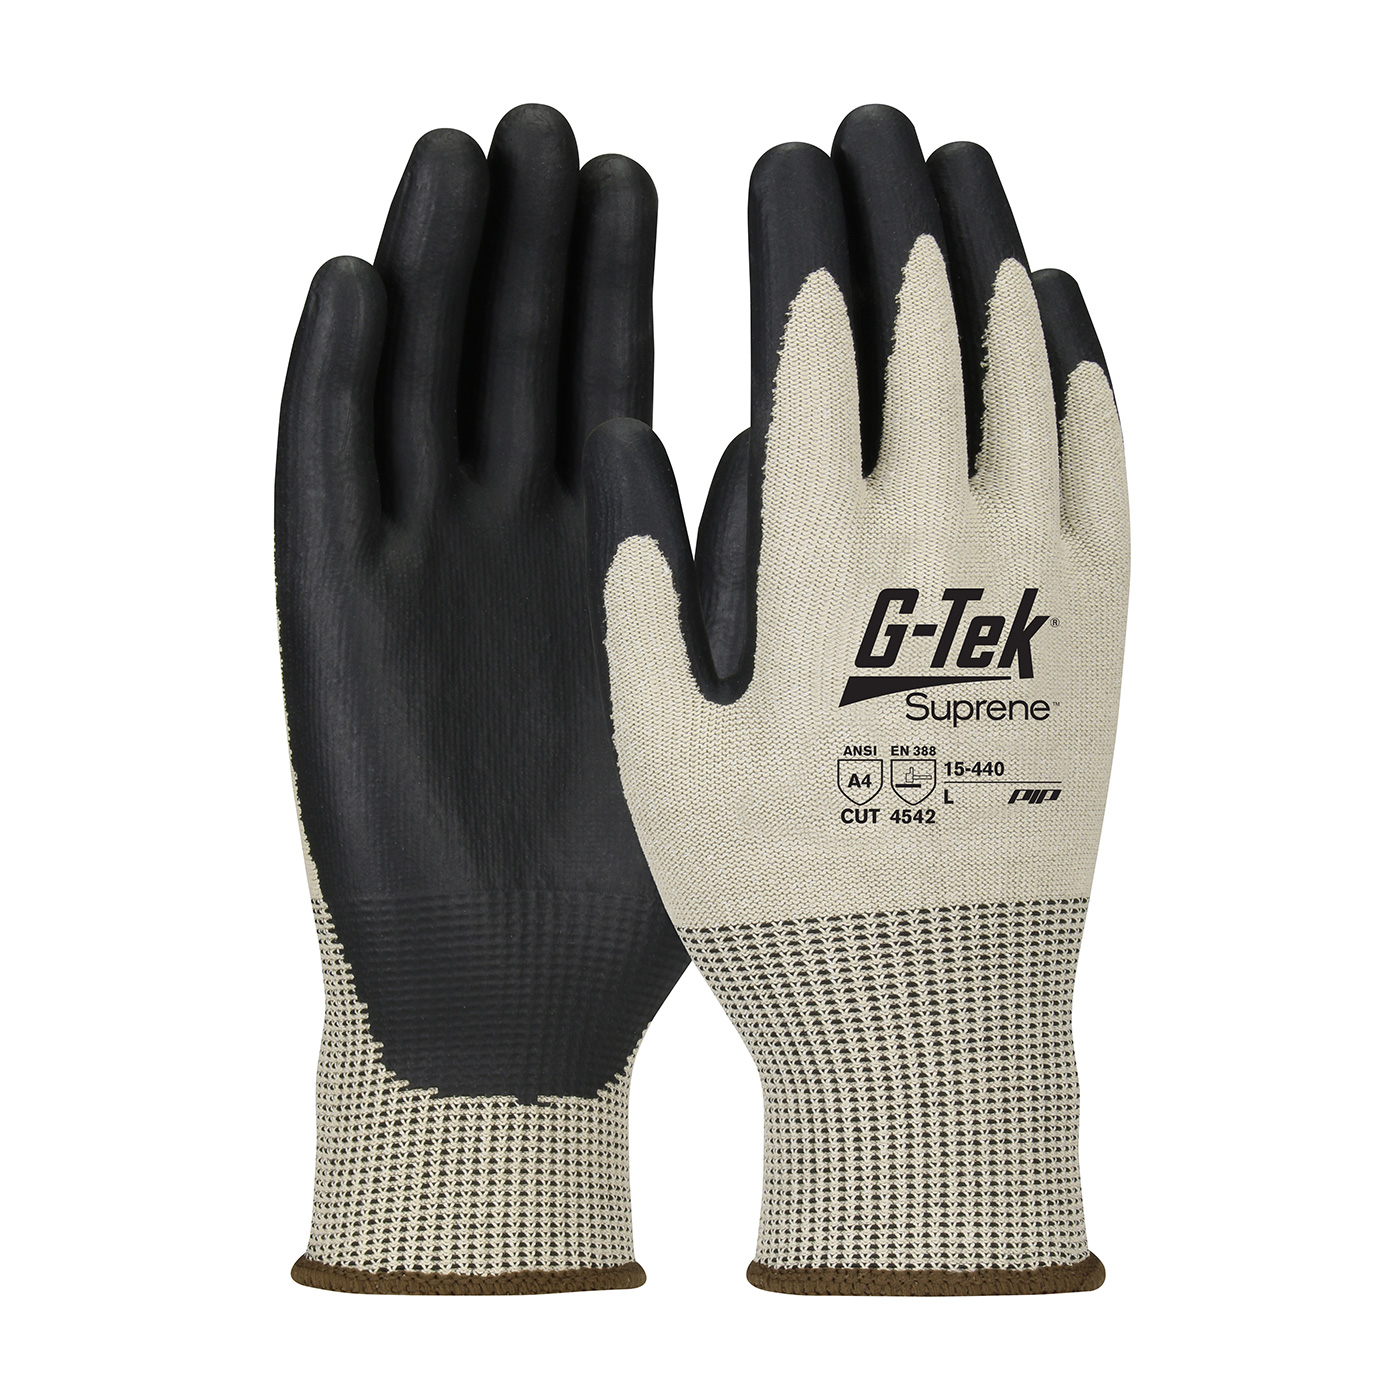 15-440  PIP® G-Tek® Suprene™ palm and finger NeoFoam coated grip gloves